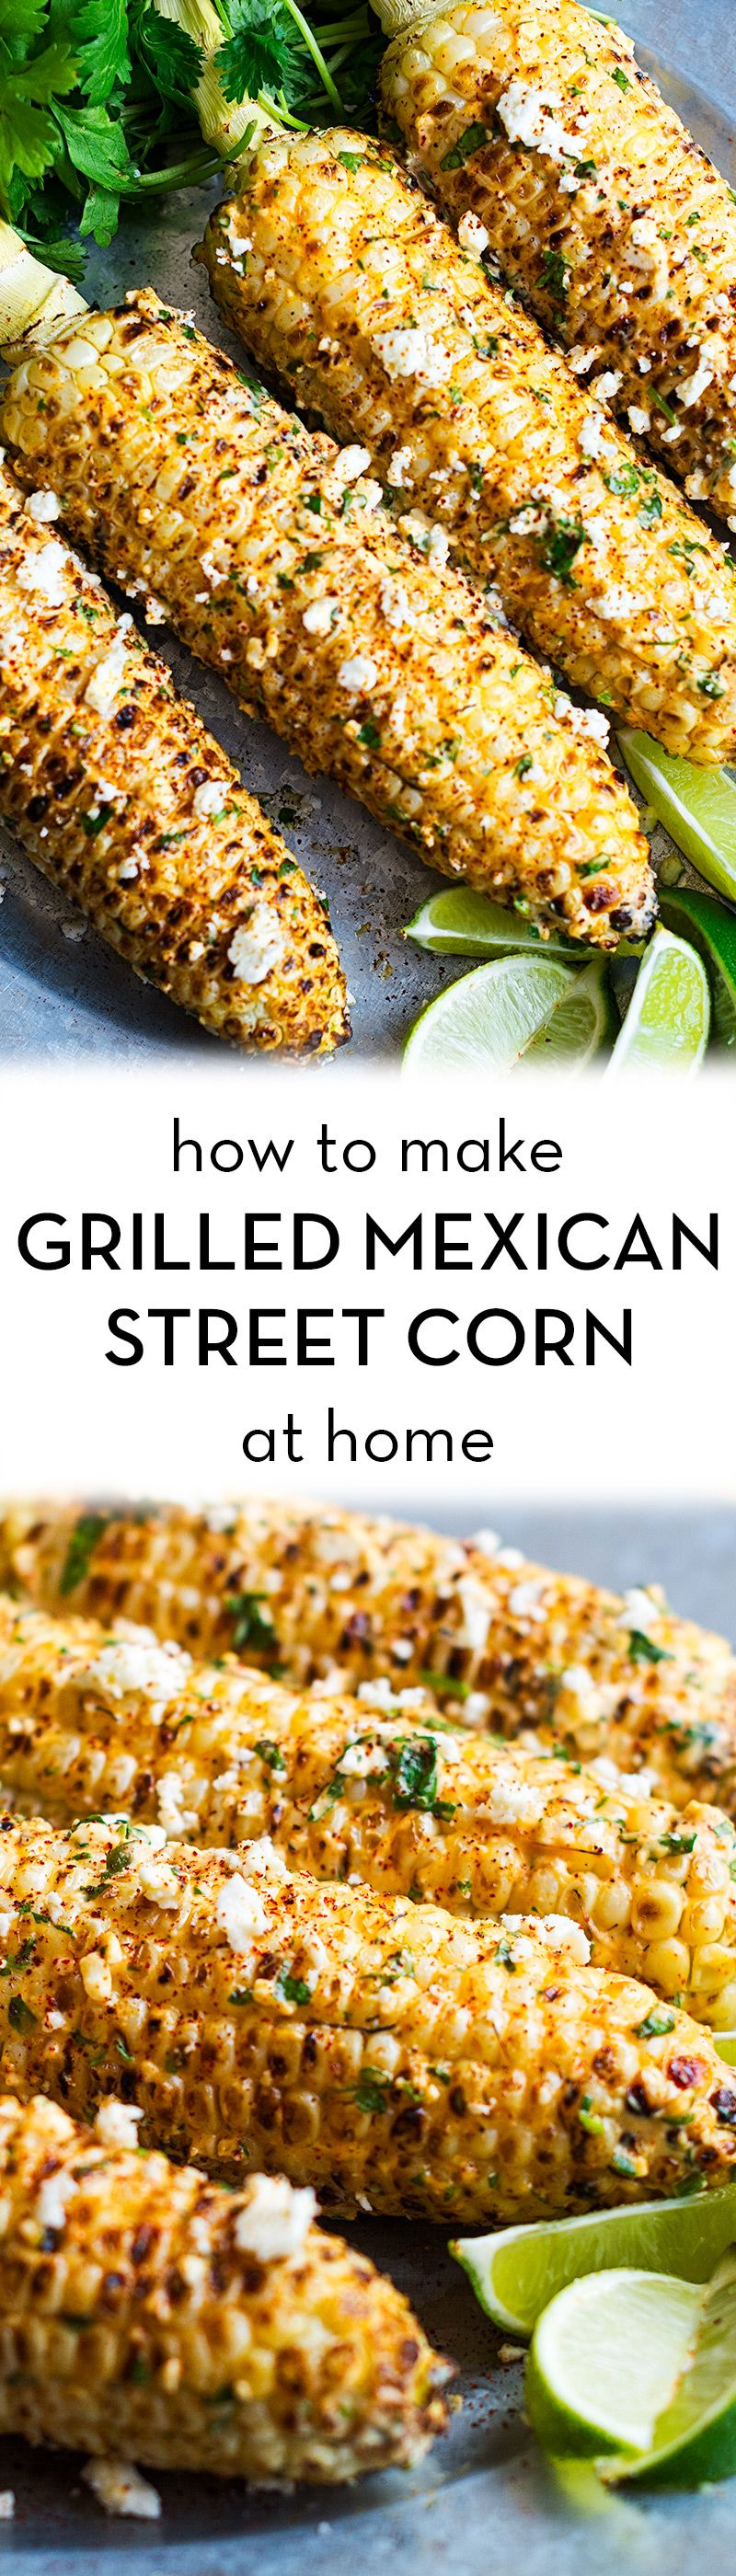 How to Make Sensational Mexican Street Corn at Home #mexicanstreetcorn